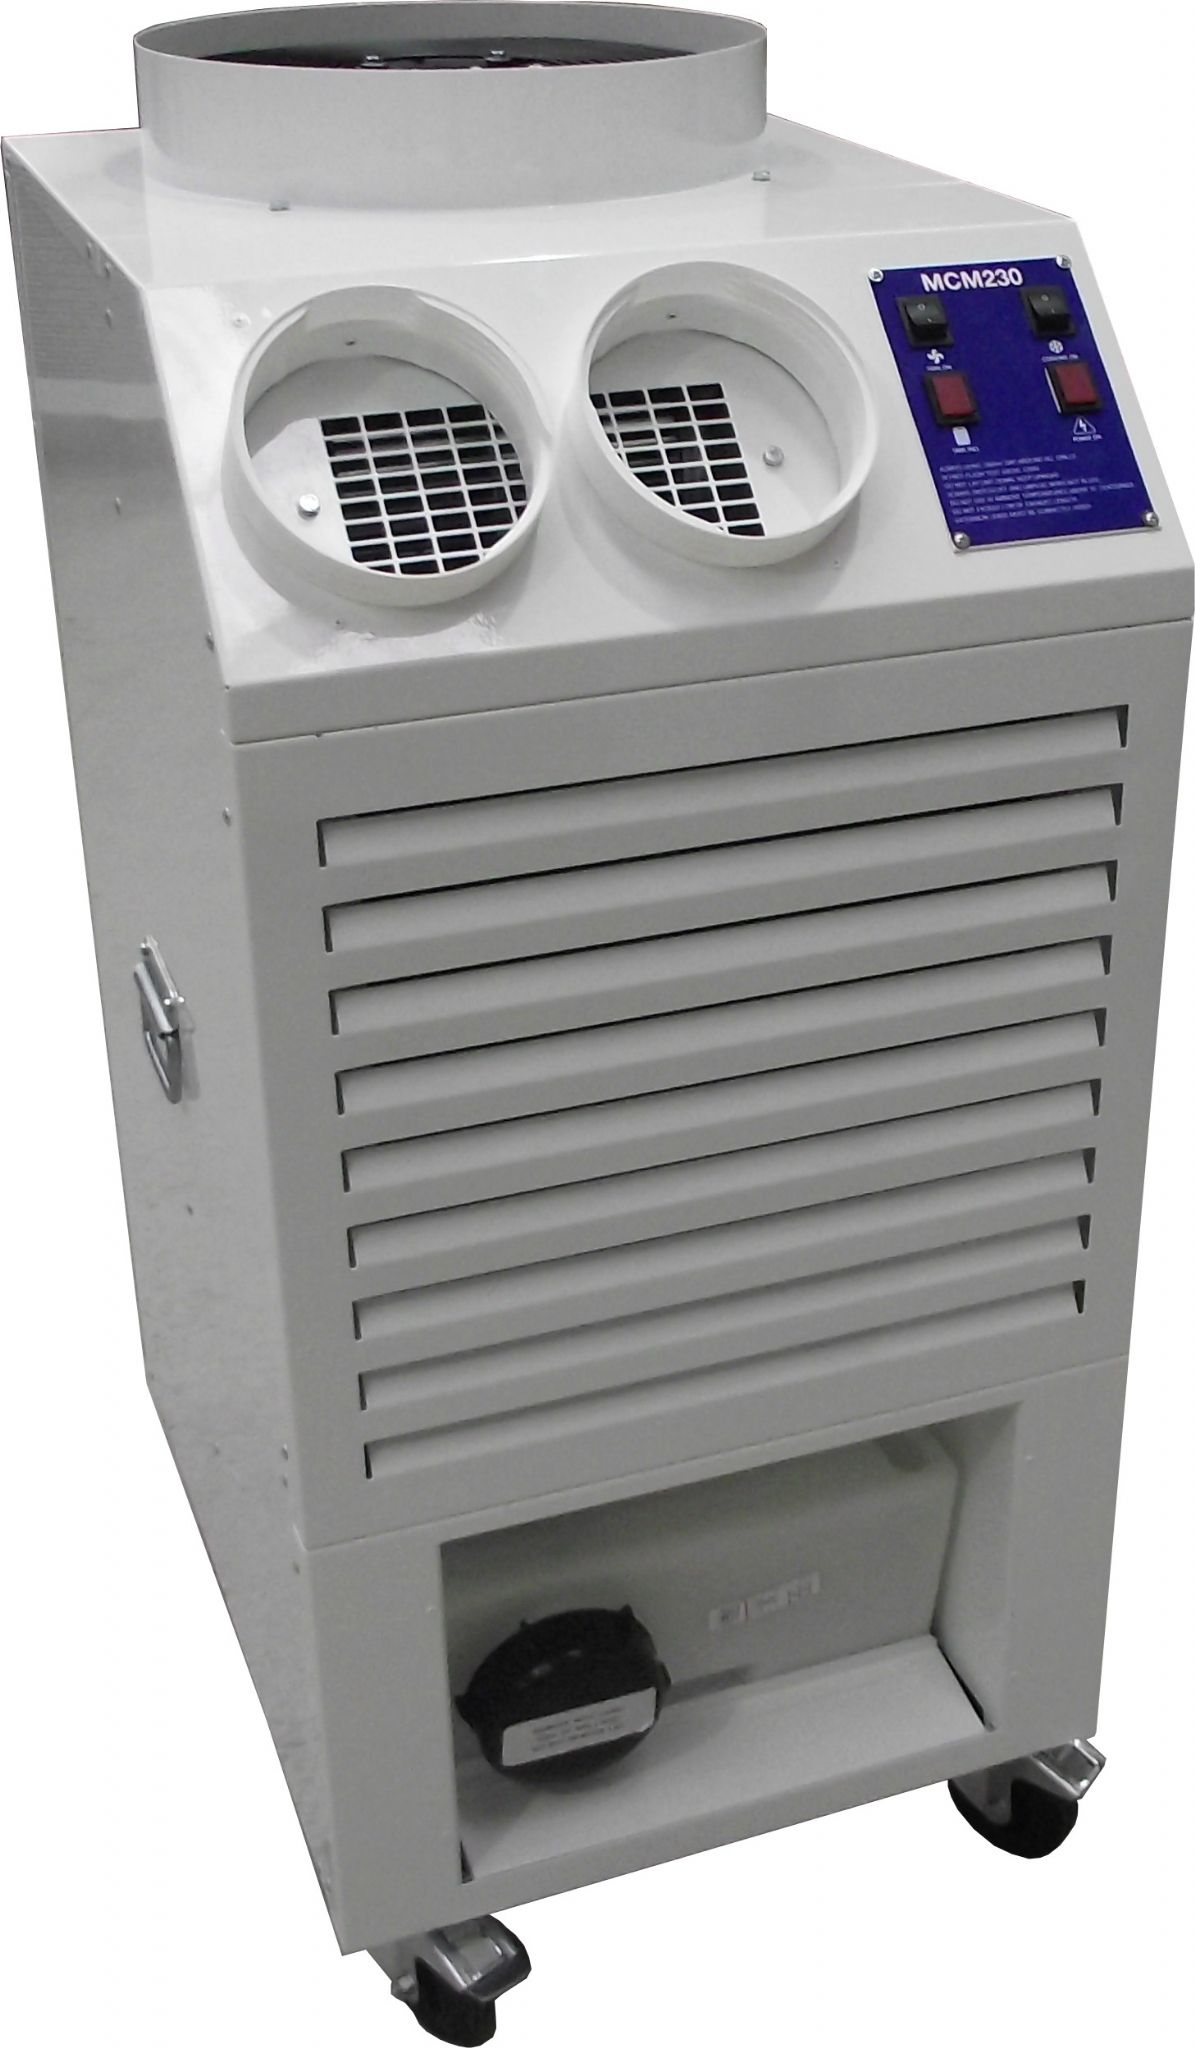 MCM230 Industrial Portable Air Conditioning 6.7 kW #271F68